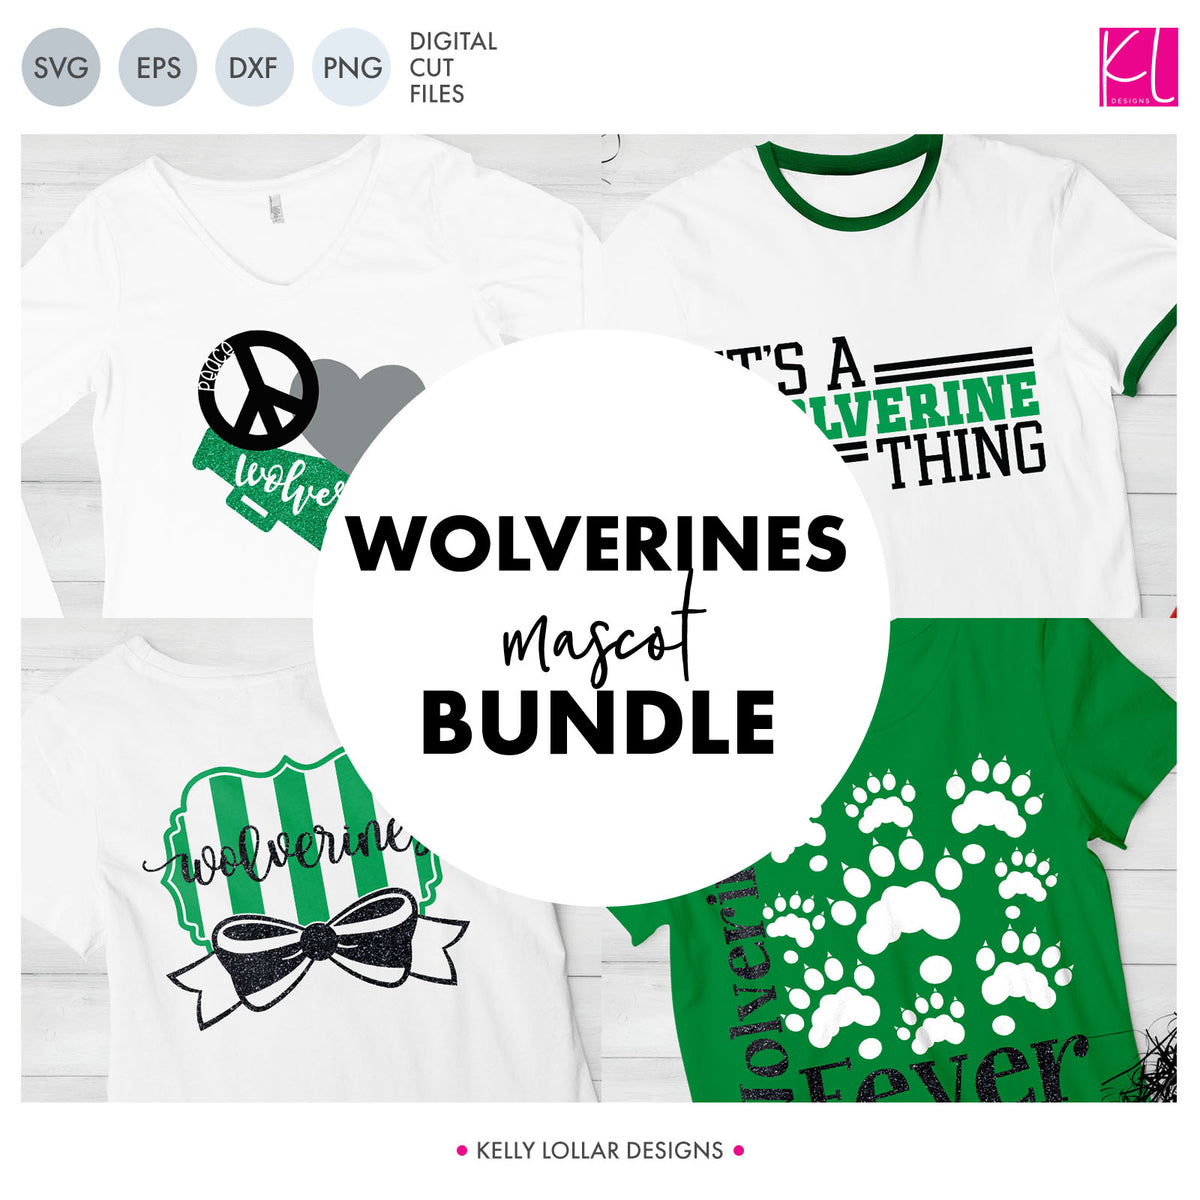 Wolverines Mascot Bundle | SVG DXF EPS PNG Cut Files